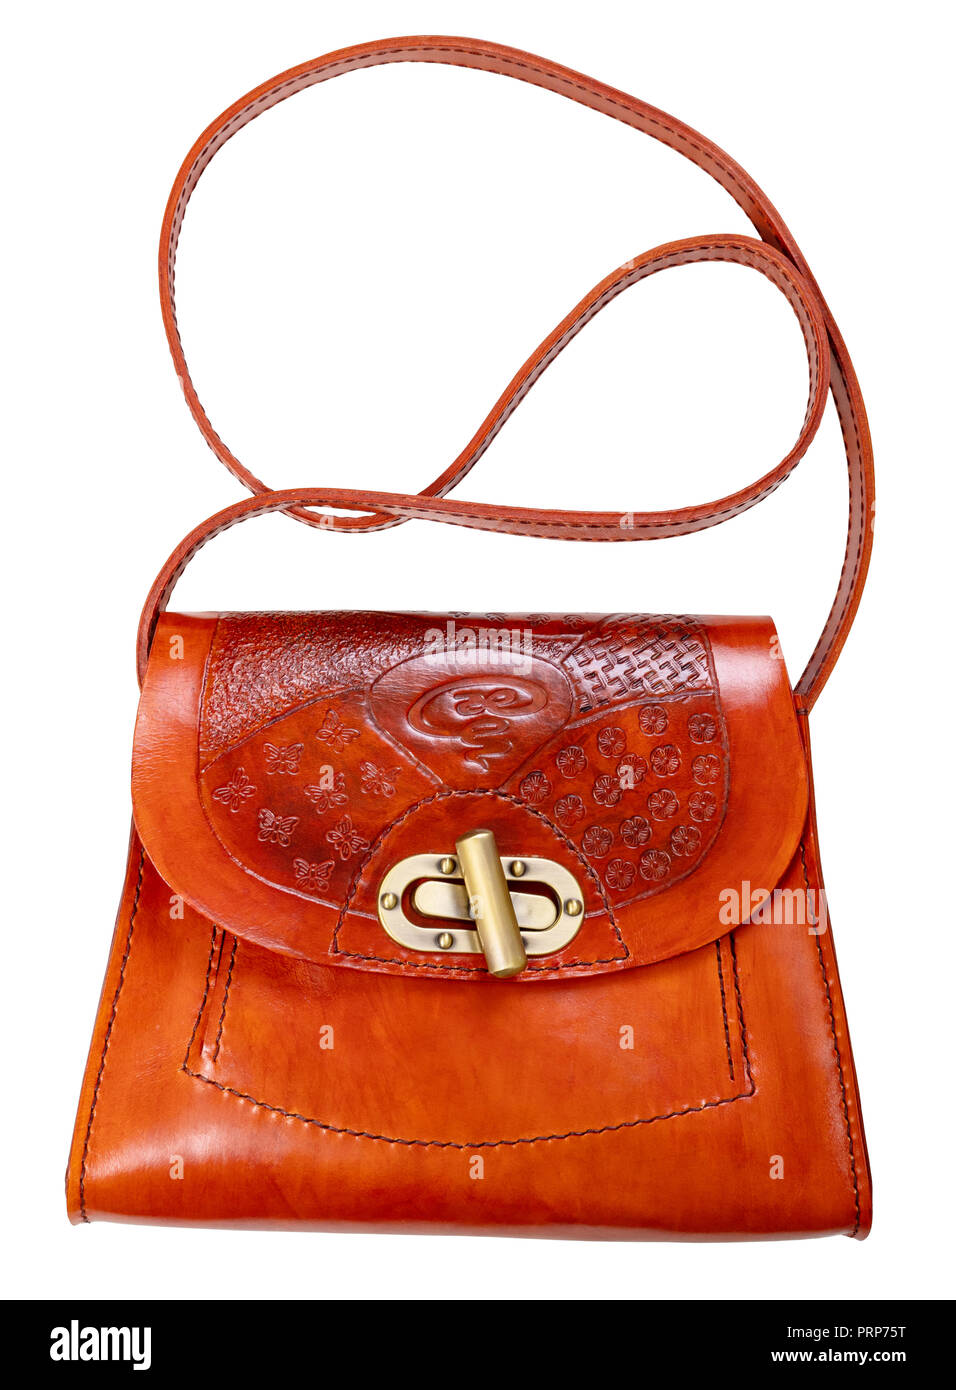 handmade orange colored embossed leather bag cut out on white background -  Stock Image 5d6cad2807da4